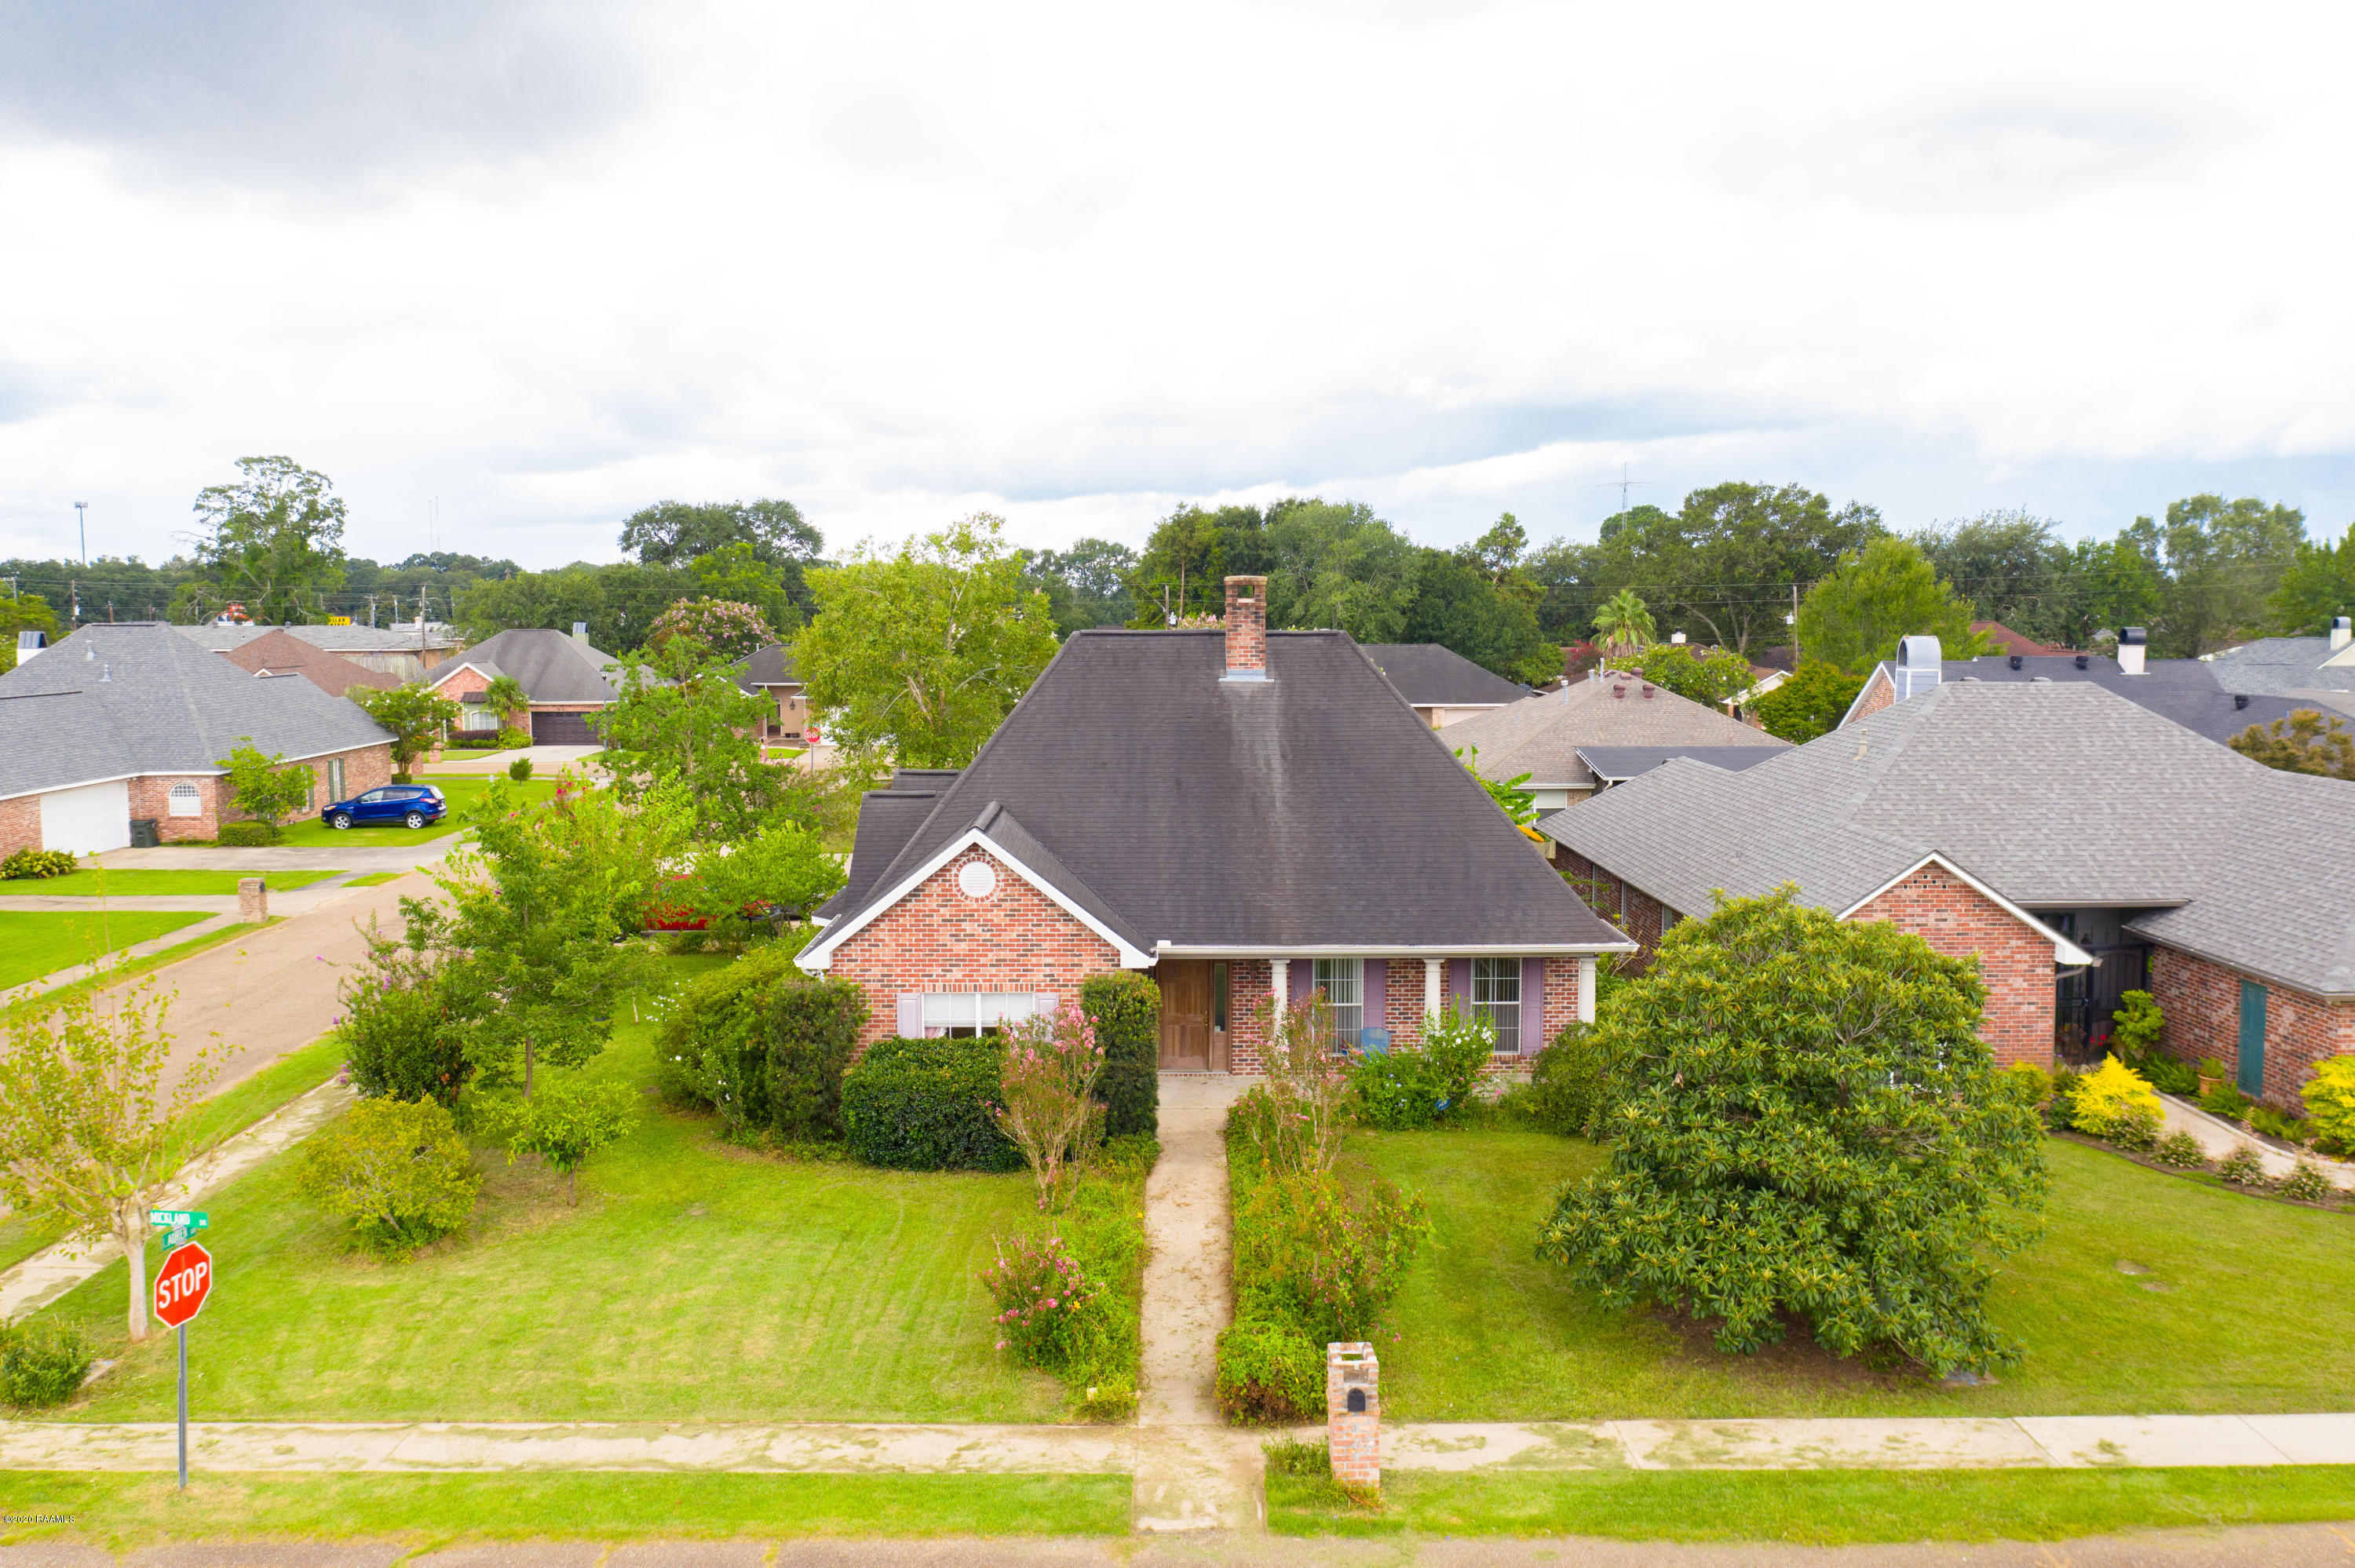 101 Nickland Drive, Scott, LA 70583 Photo #26